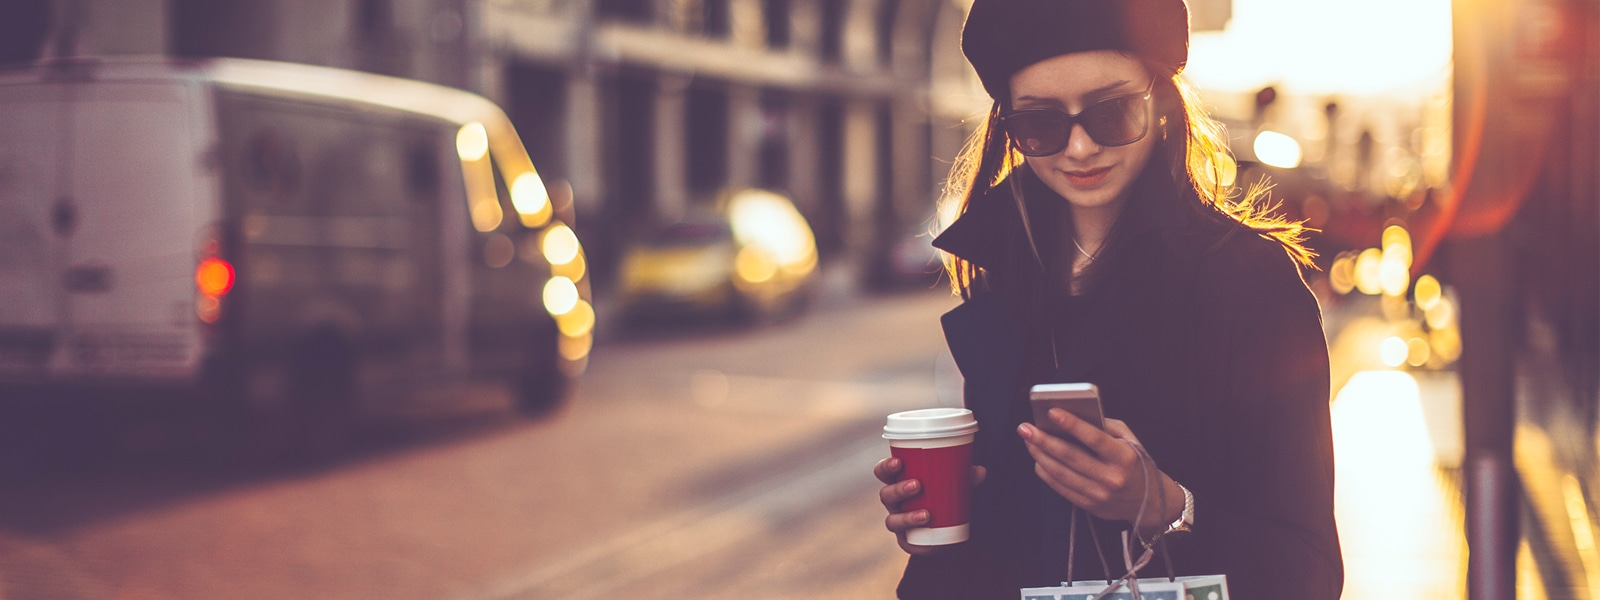 Woman holding shopping bag and coffee cup while looking at her phone